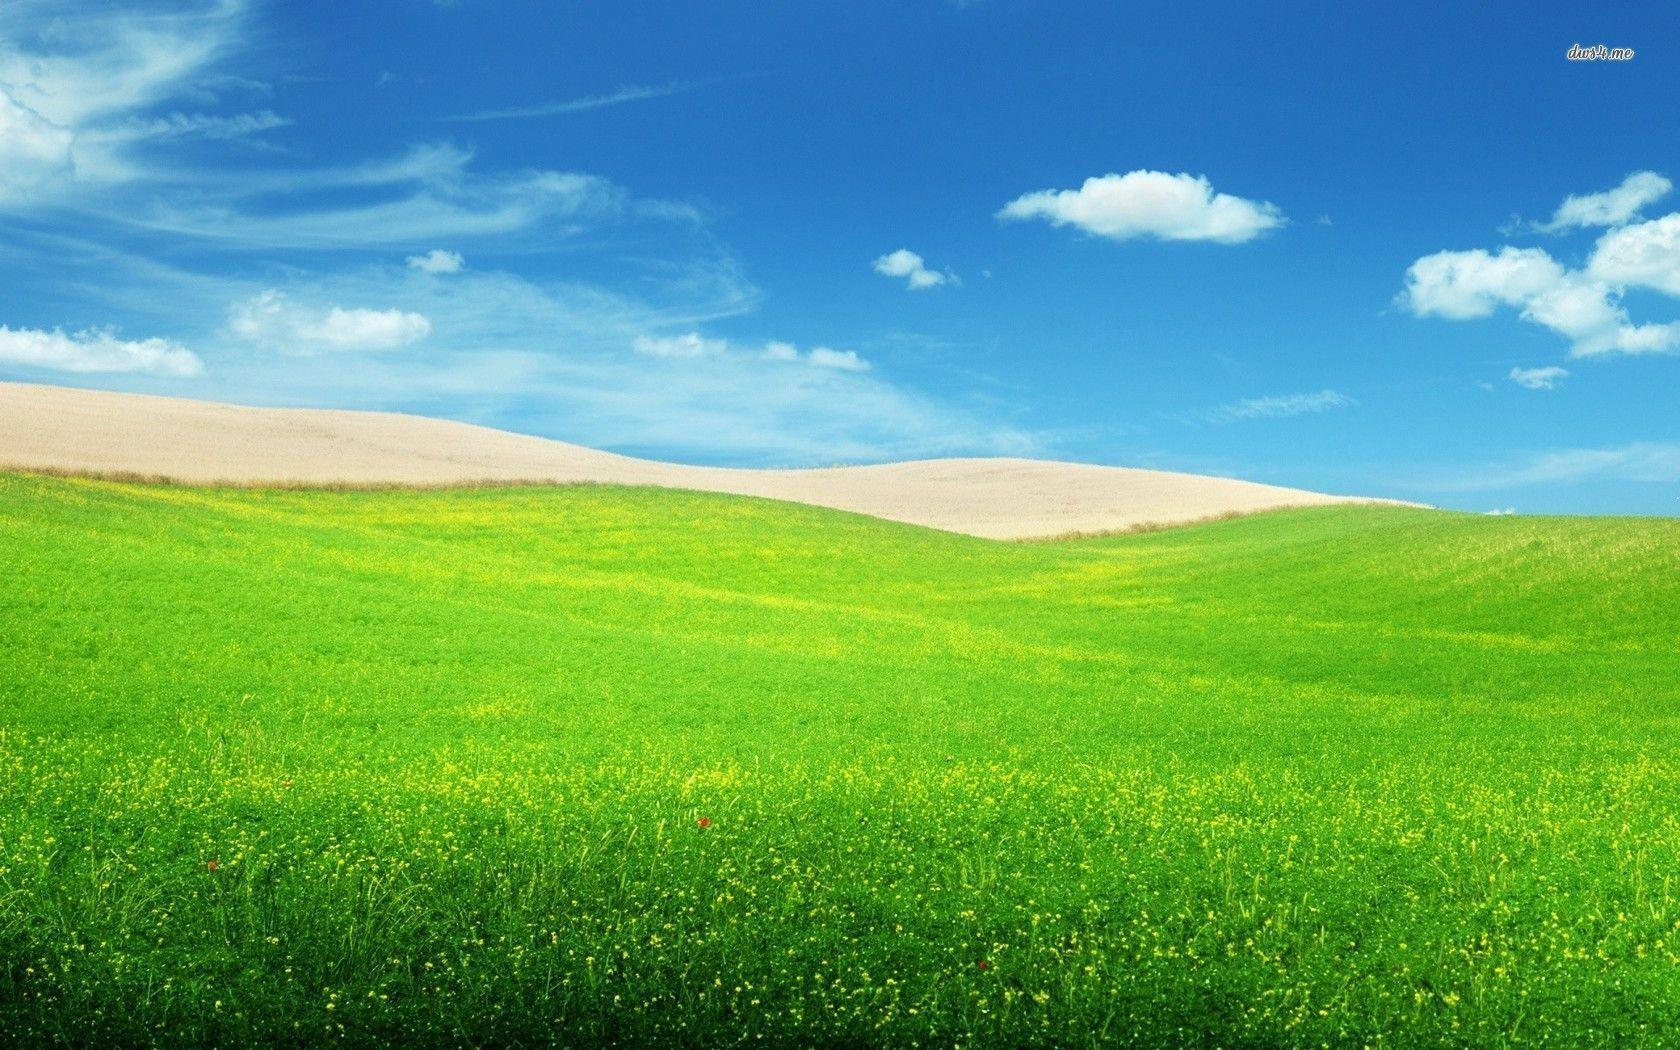 Hd Wallpaper App For Android Green Hills Wallpapers Wallpaper Cave